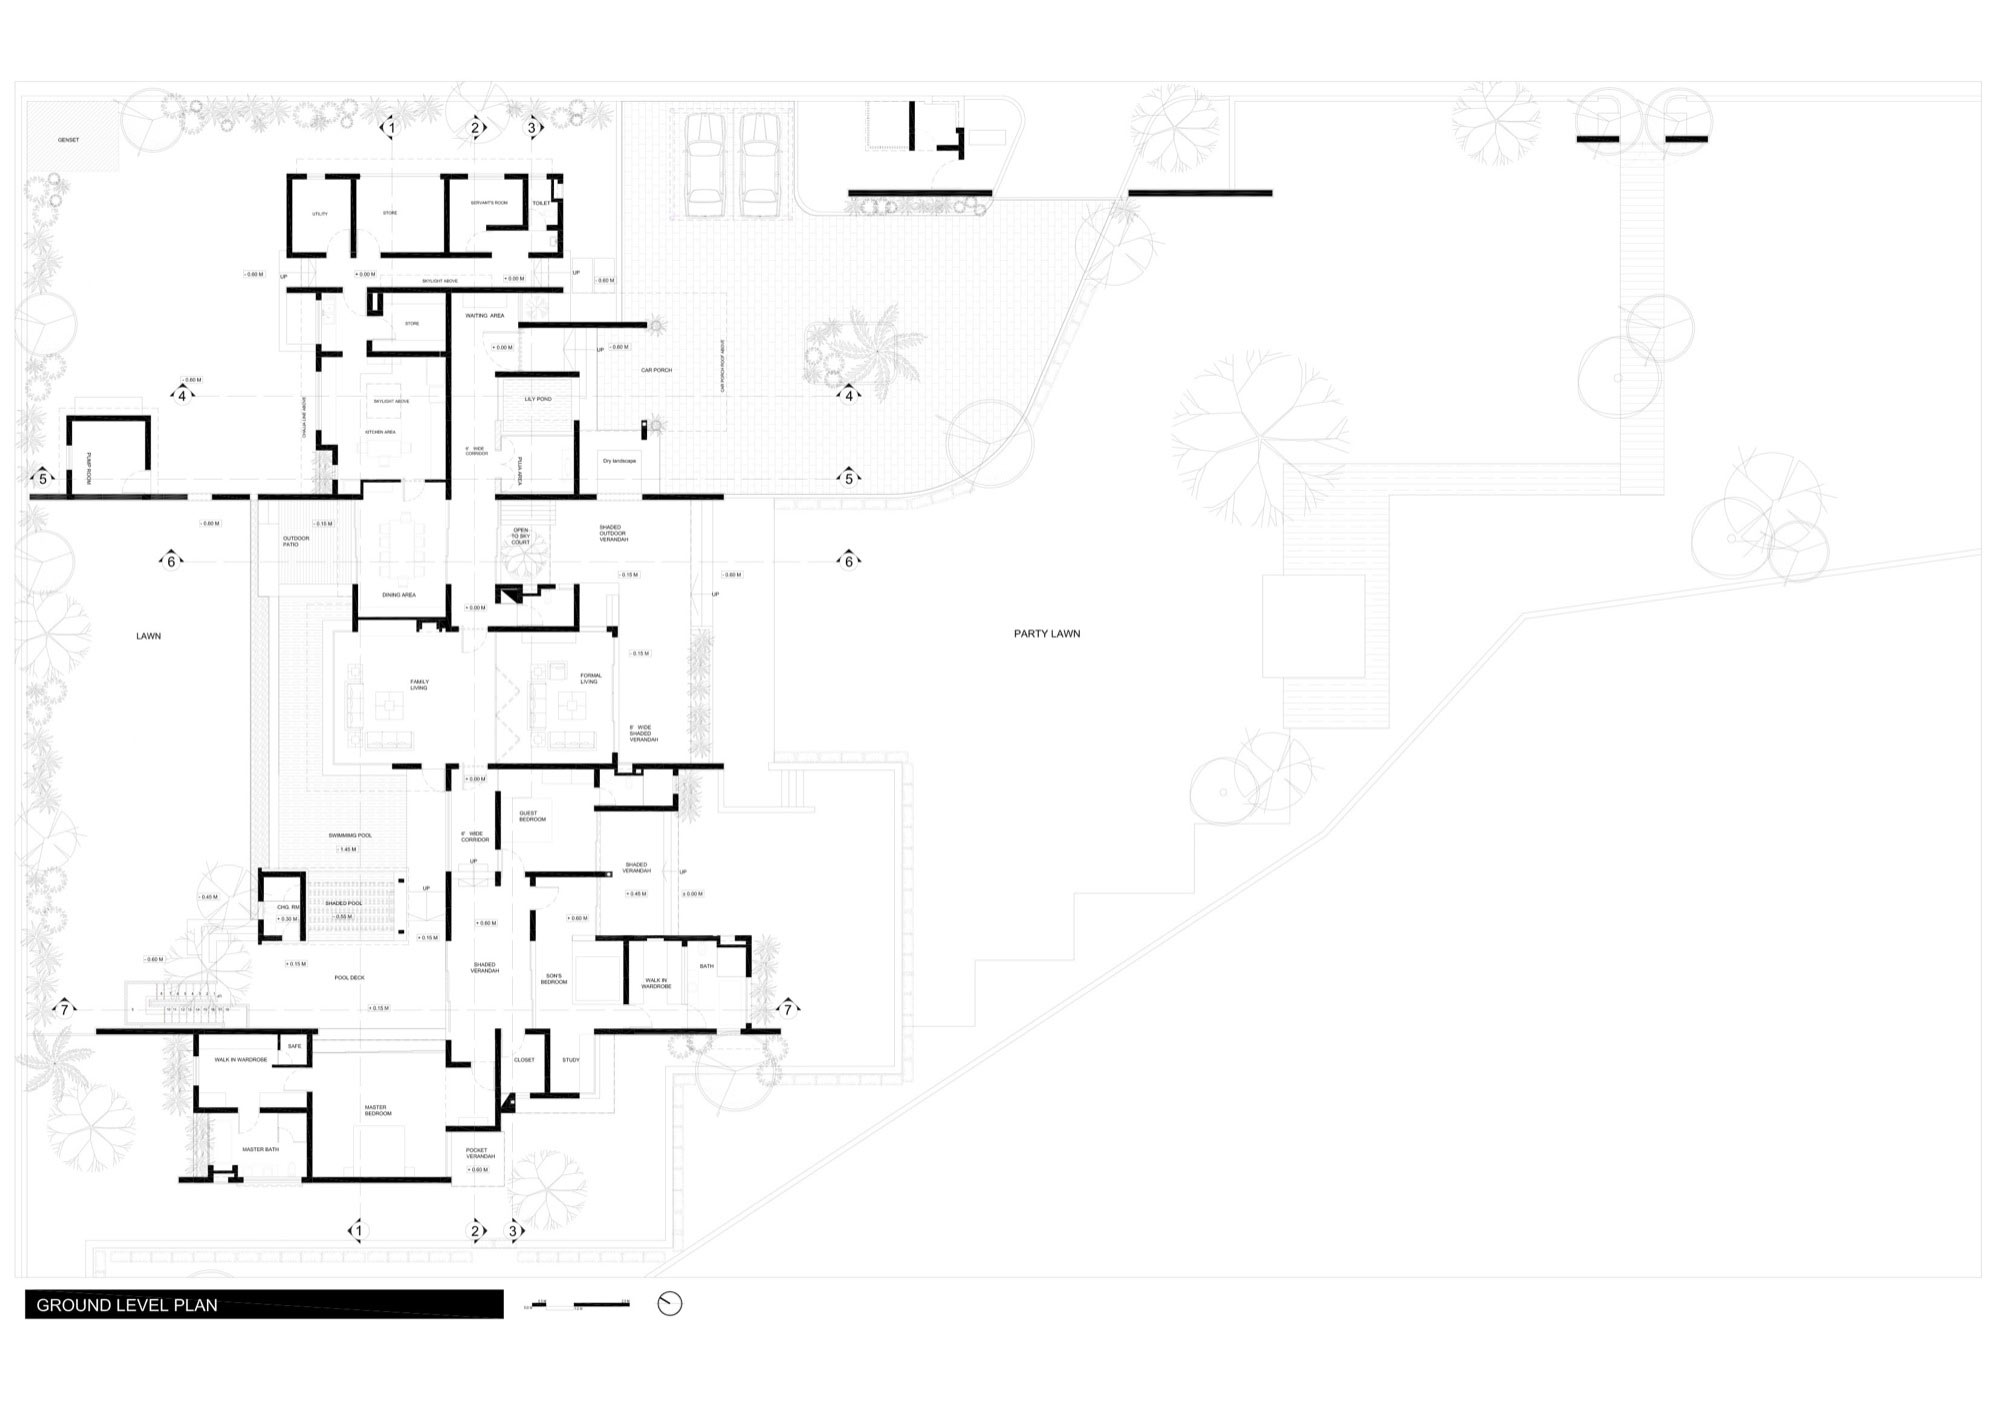 Ground Level Floor Plan, Dinesh Mill Bungalow in Baroda, India by Atelier dnD